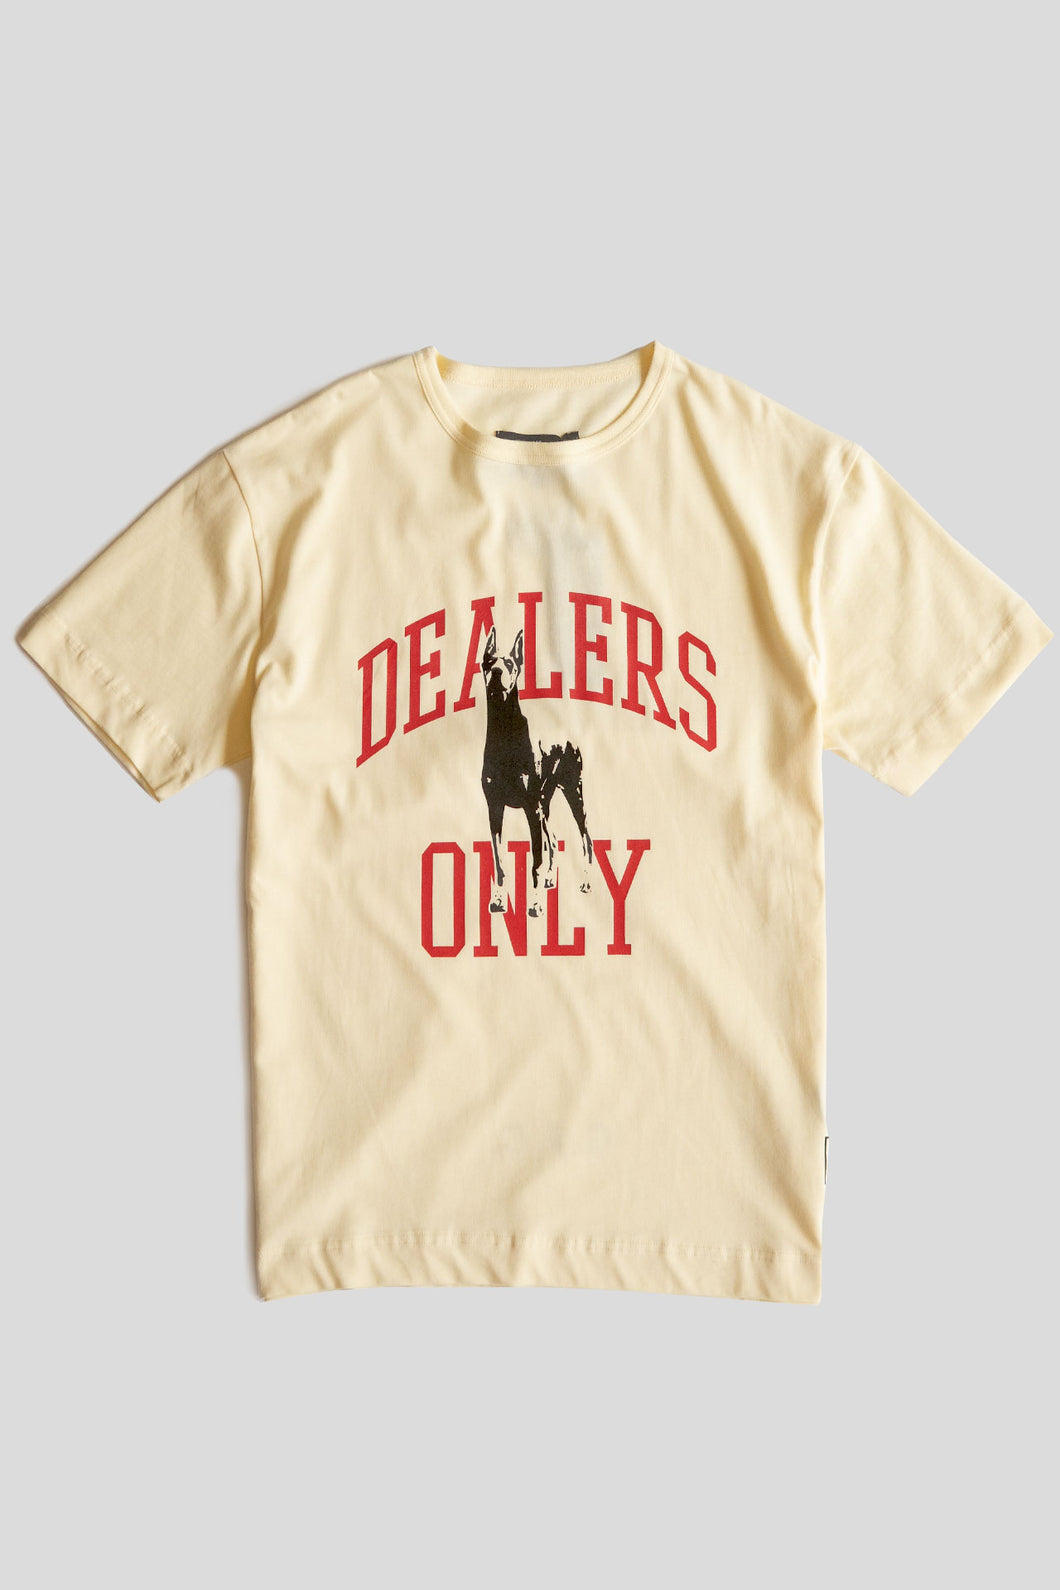 GFC - Dealers Only Tee - Ecru/Red